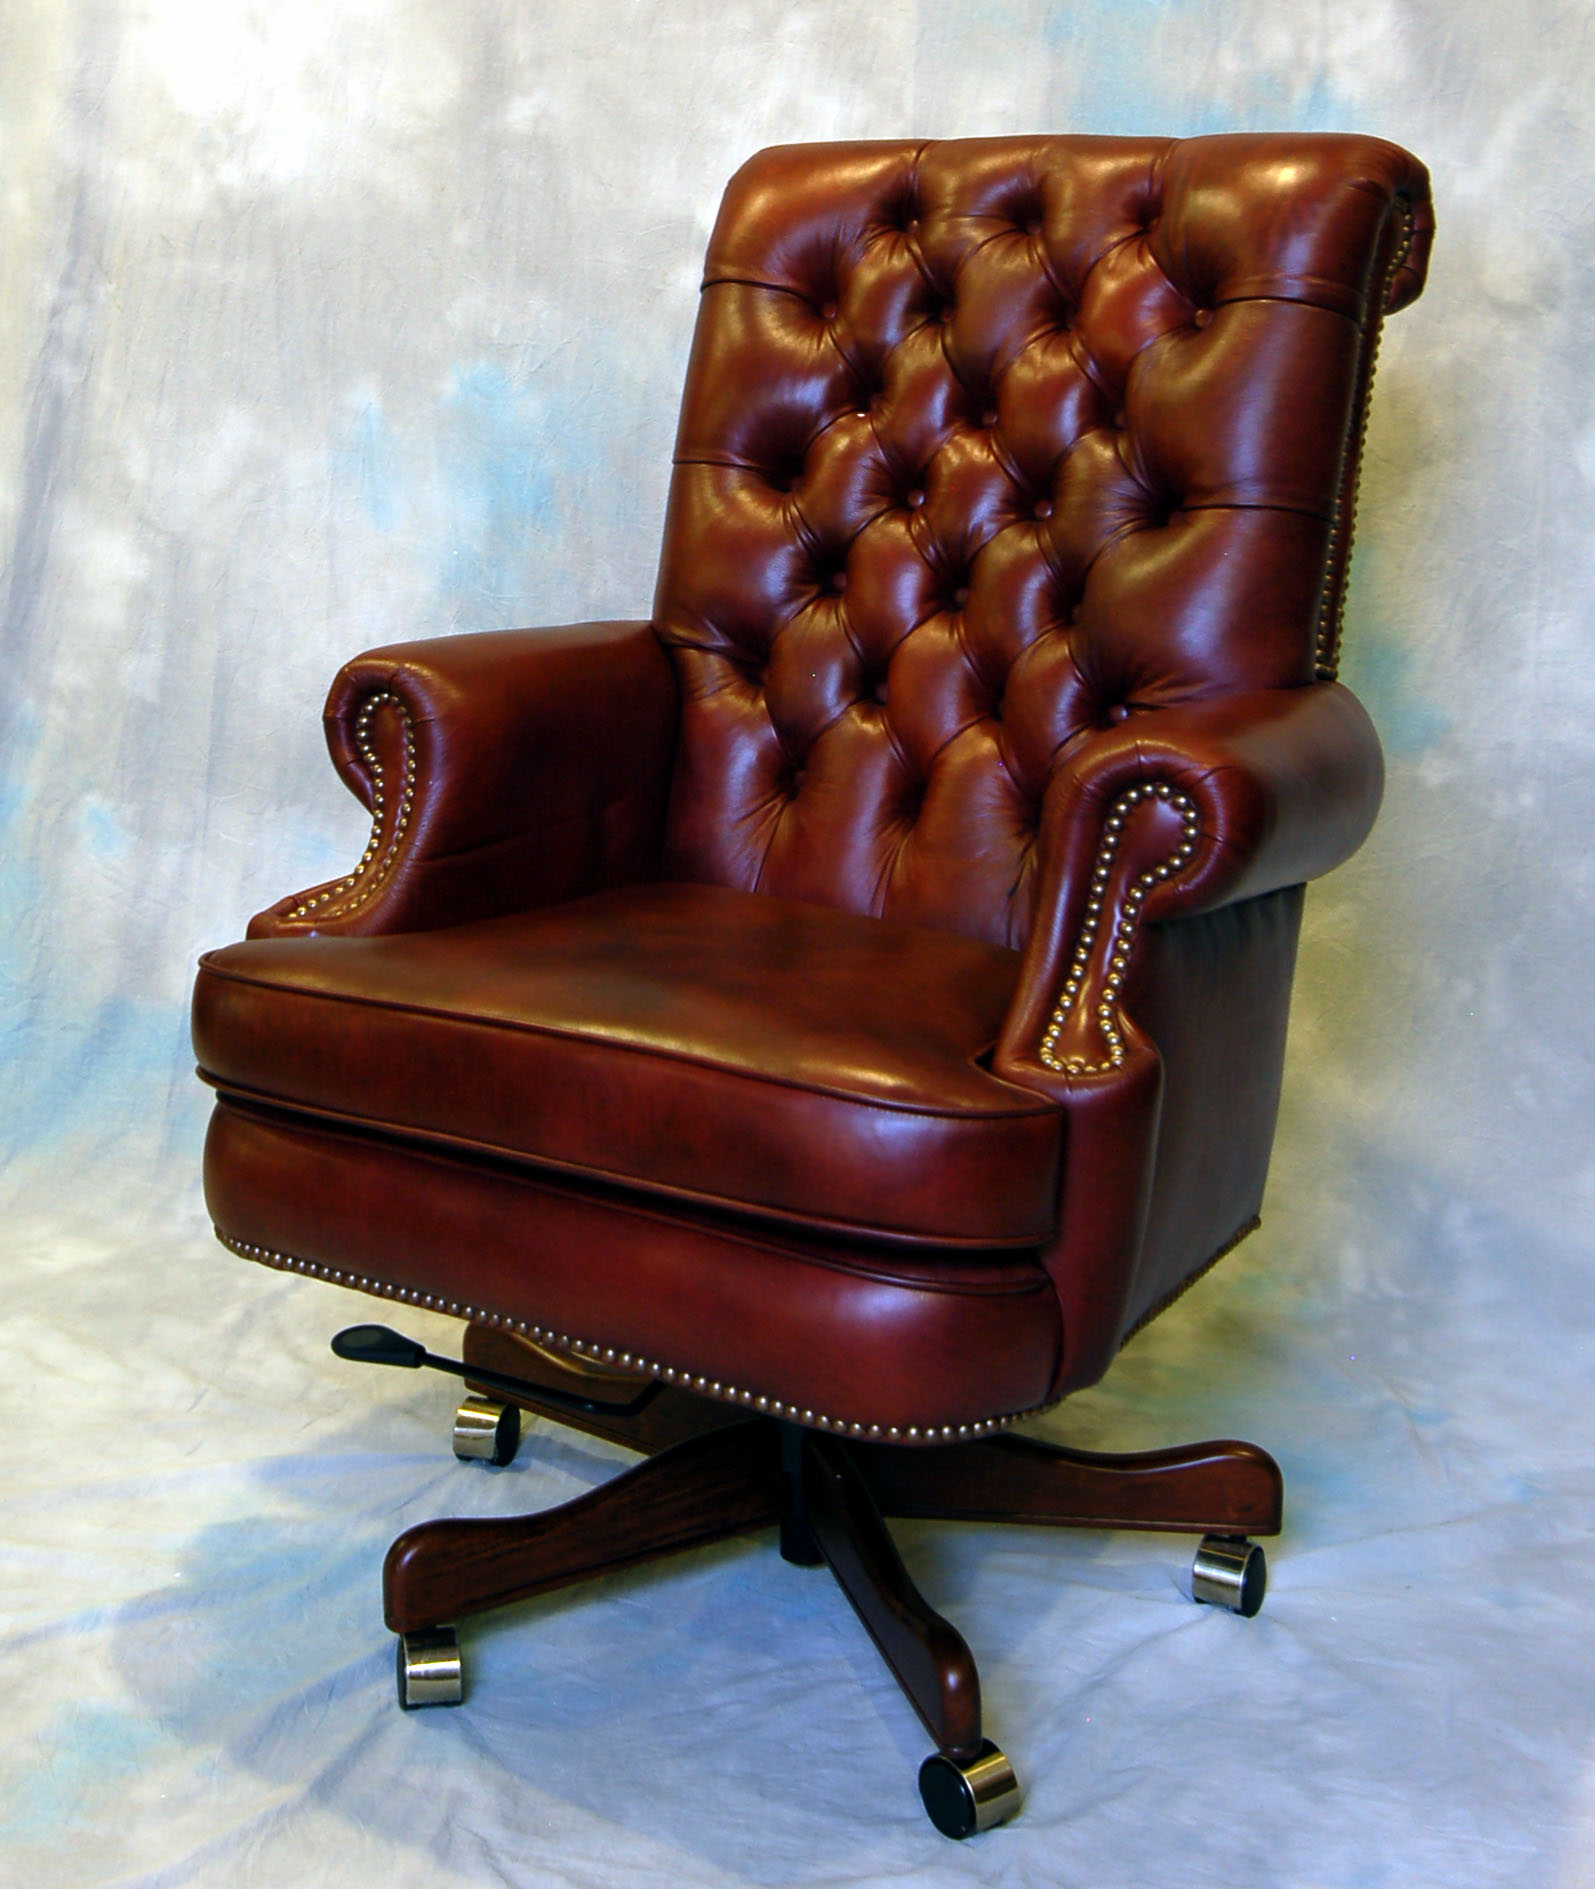 Office Chairs Clearance: Large Genuine Leather Executive Office Desk Chair